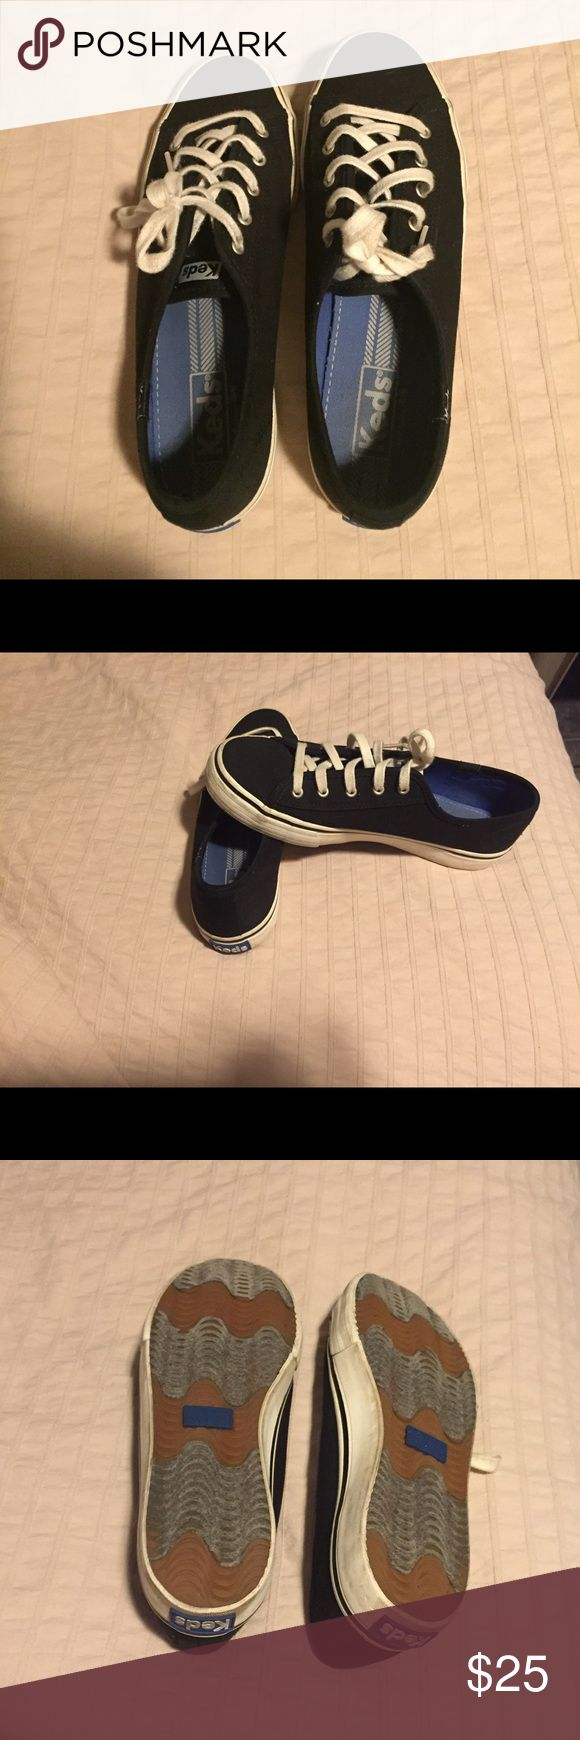 Keds tennis size 7.5 Black tennis shoes good condition Shoes Sneakers